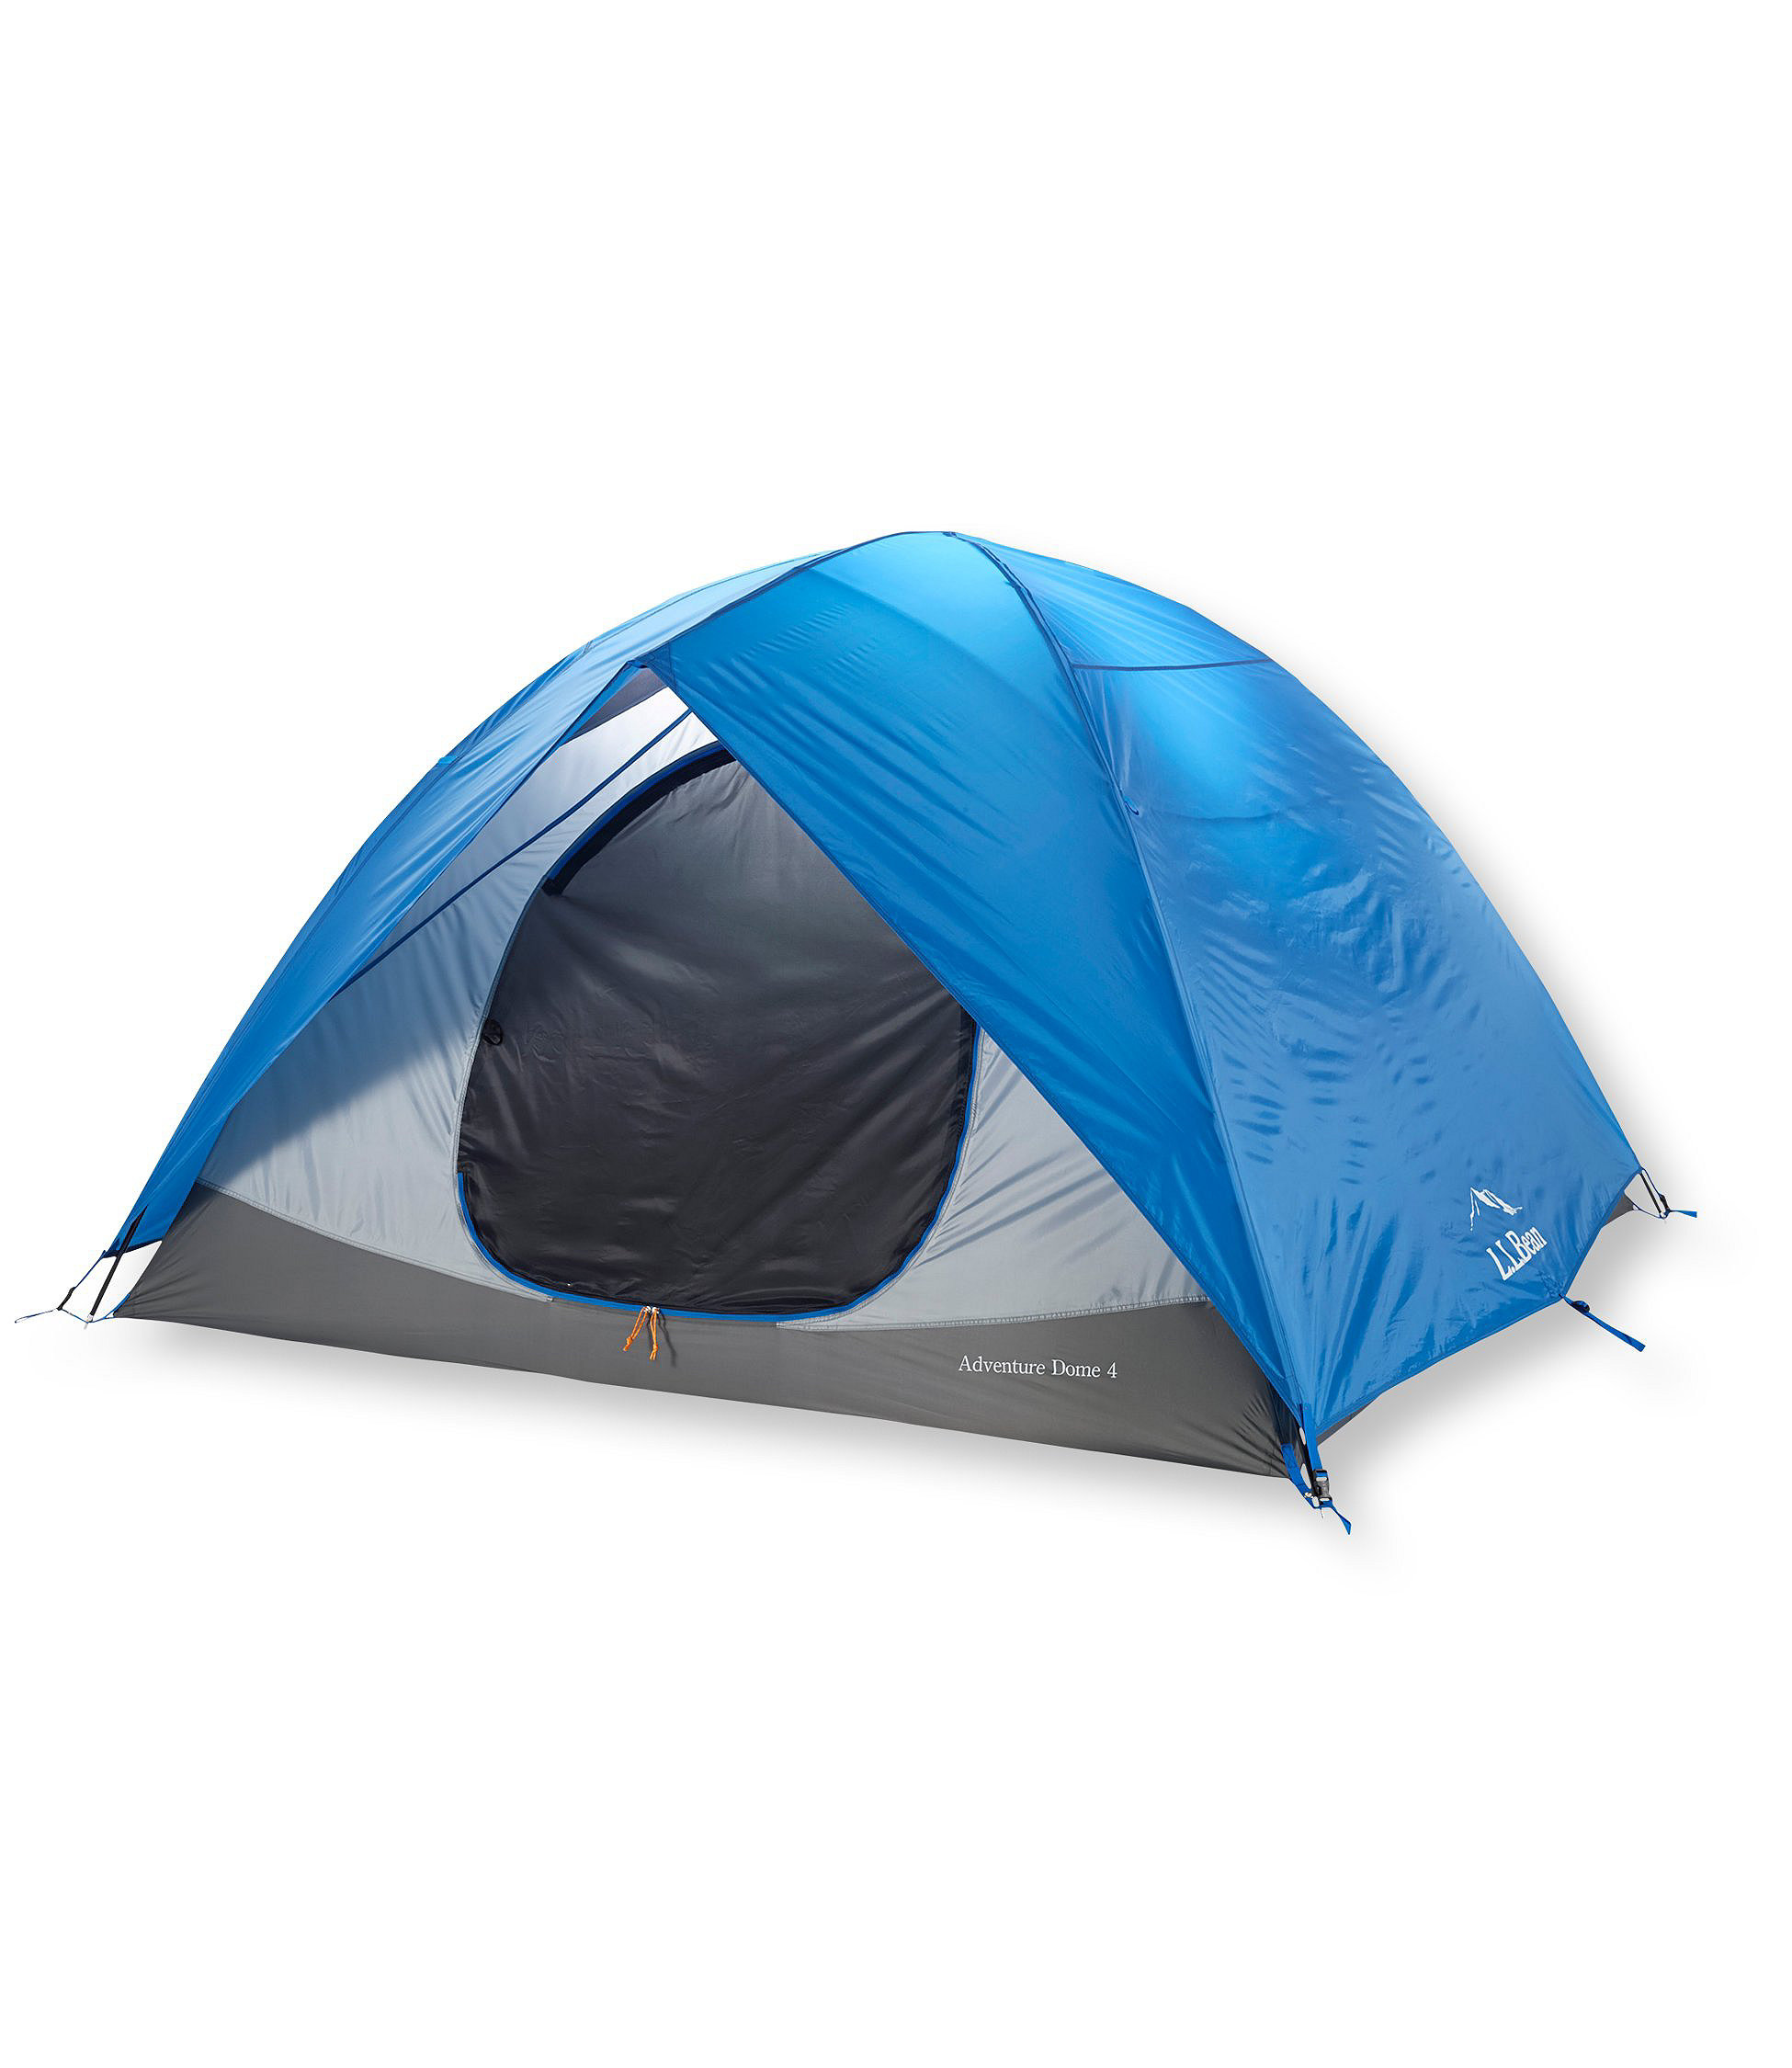 Adventure Dome 4-Person Tent | Free Shipping at L.L.Bean